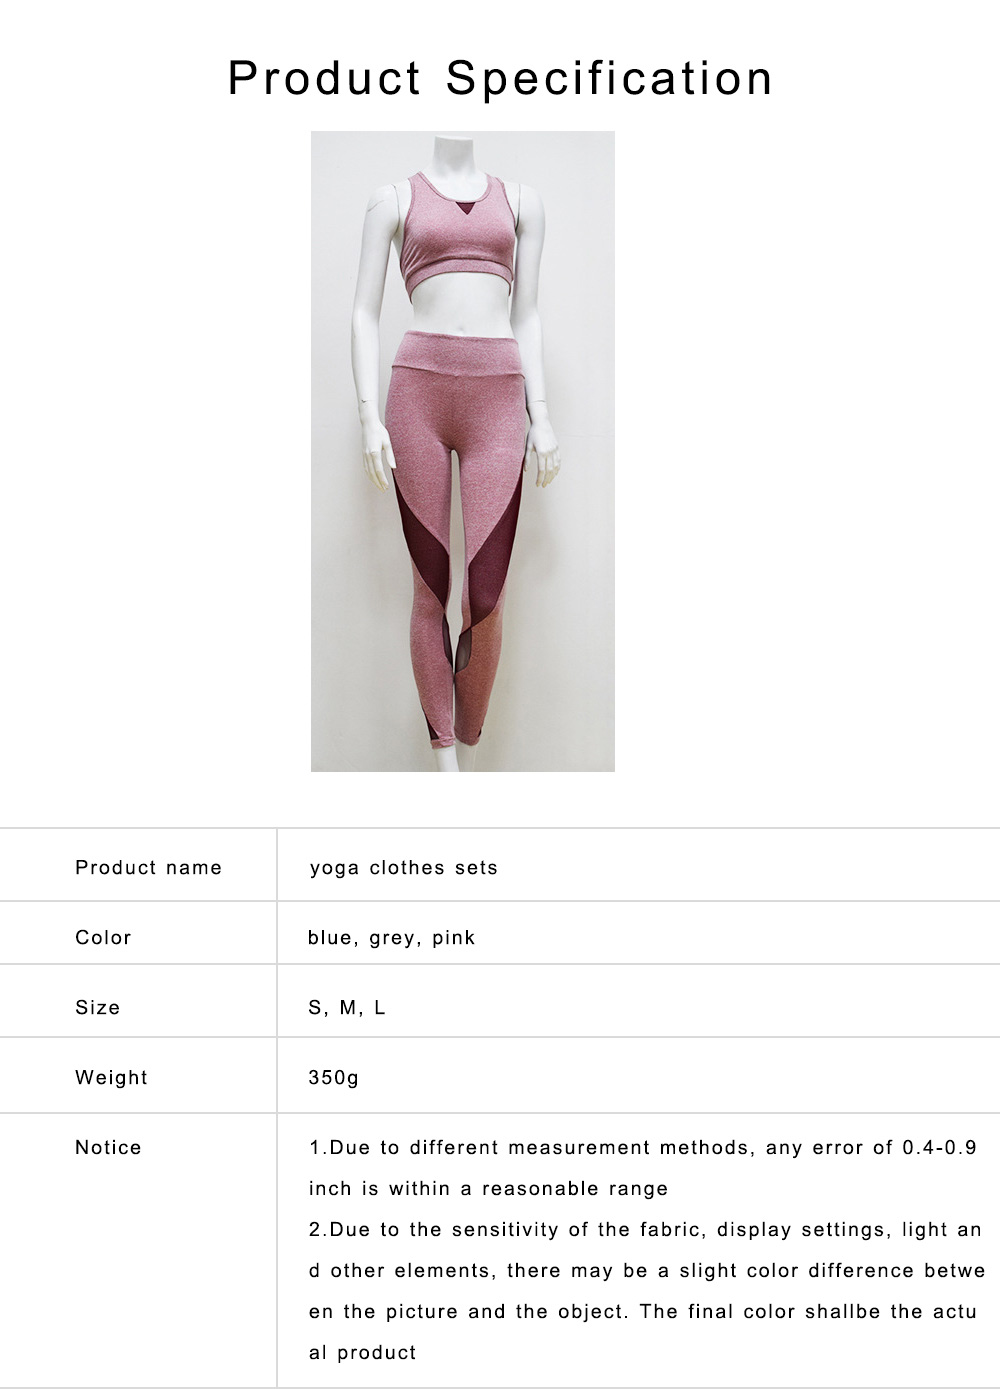 Yoga Clothes Sets Tank Top, High-Waist Leggings 2 Piece Sets for Women, Gym Clothes Set with High Elasticity 6